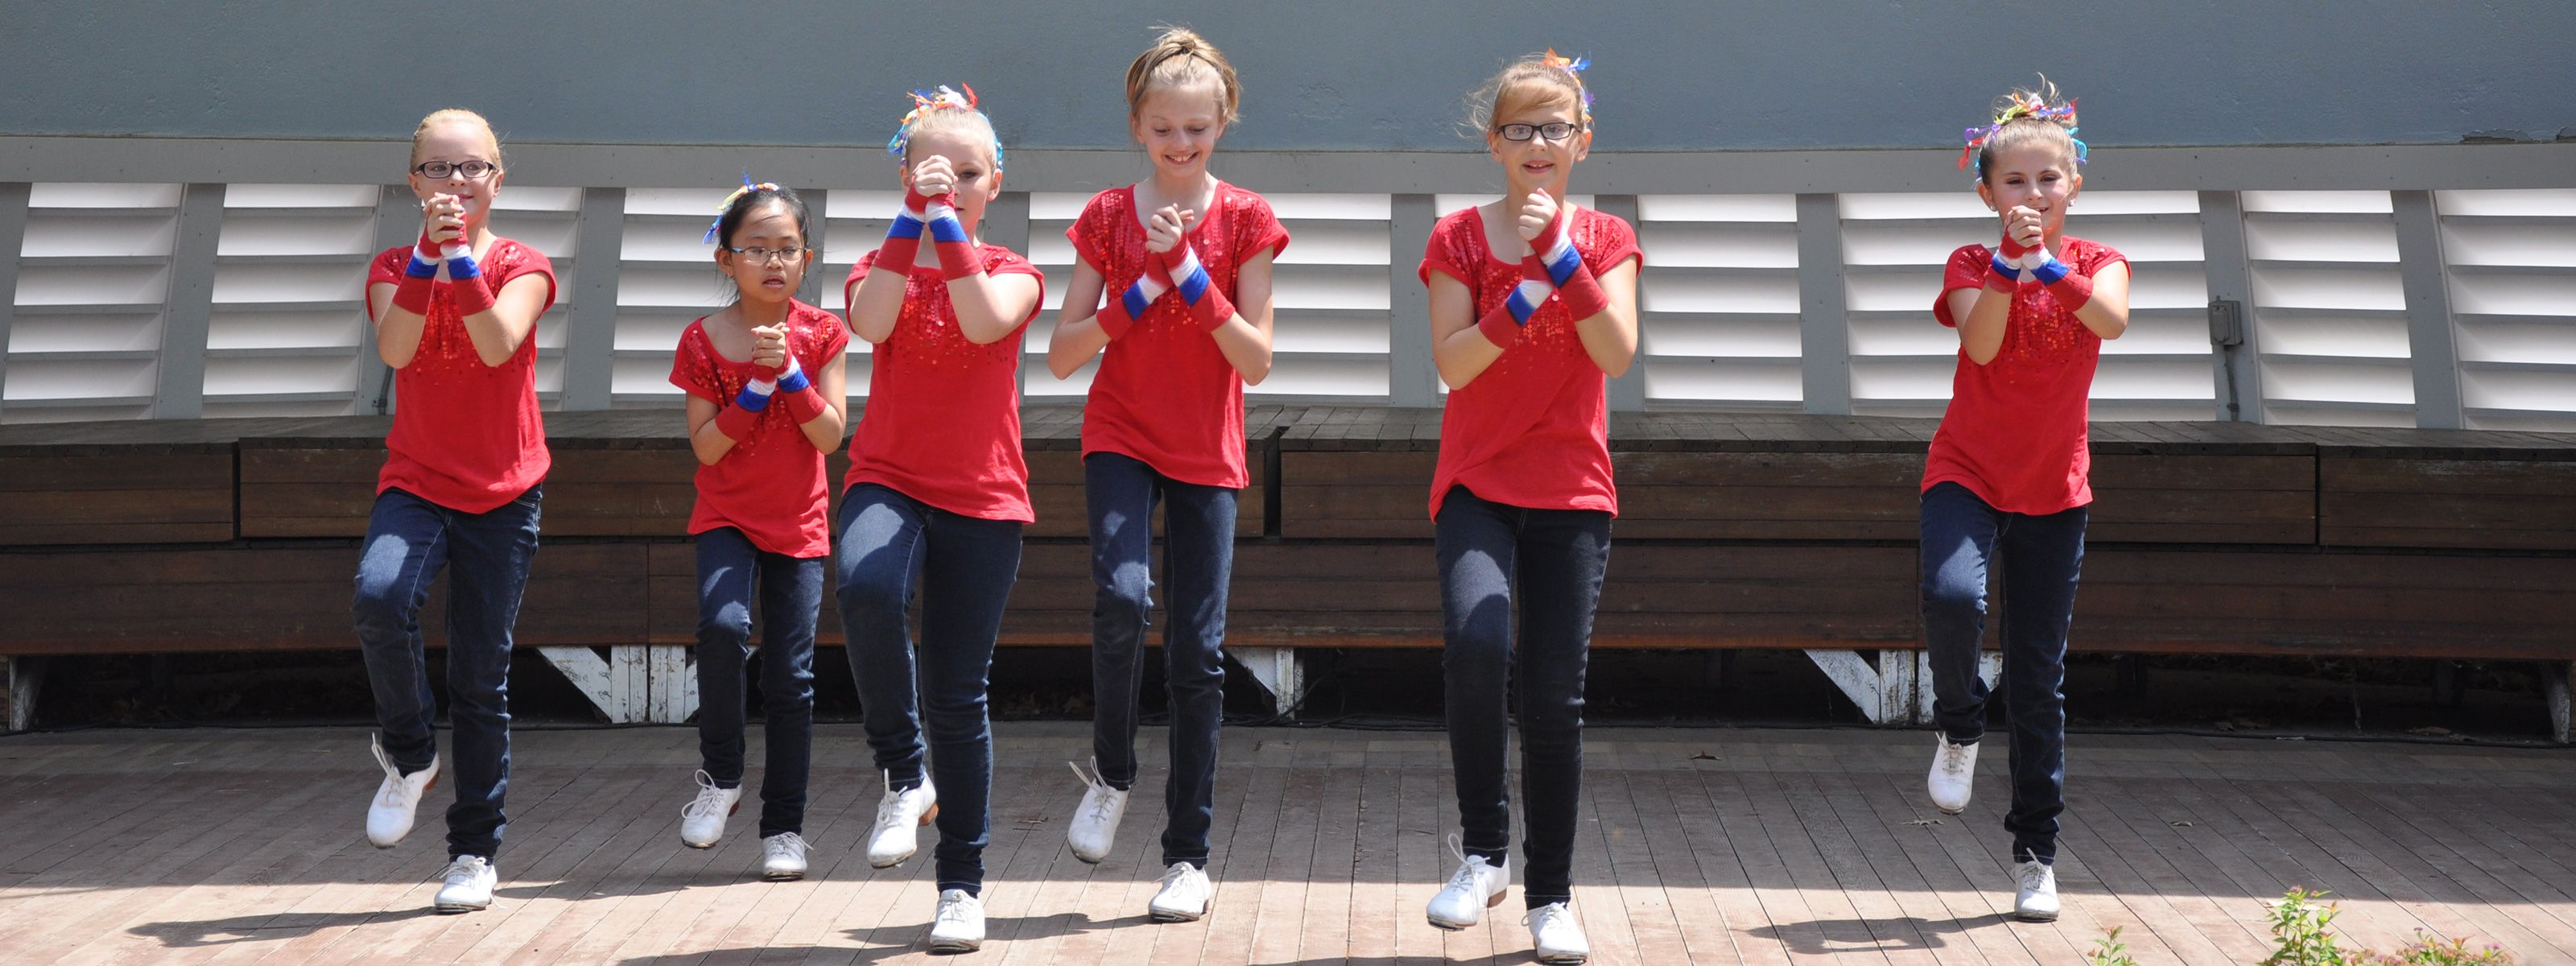 Children dancing on the Bandshell stage on July 4th in Seward, Nebraska